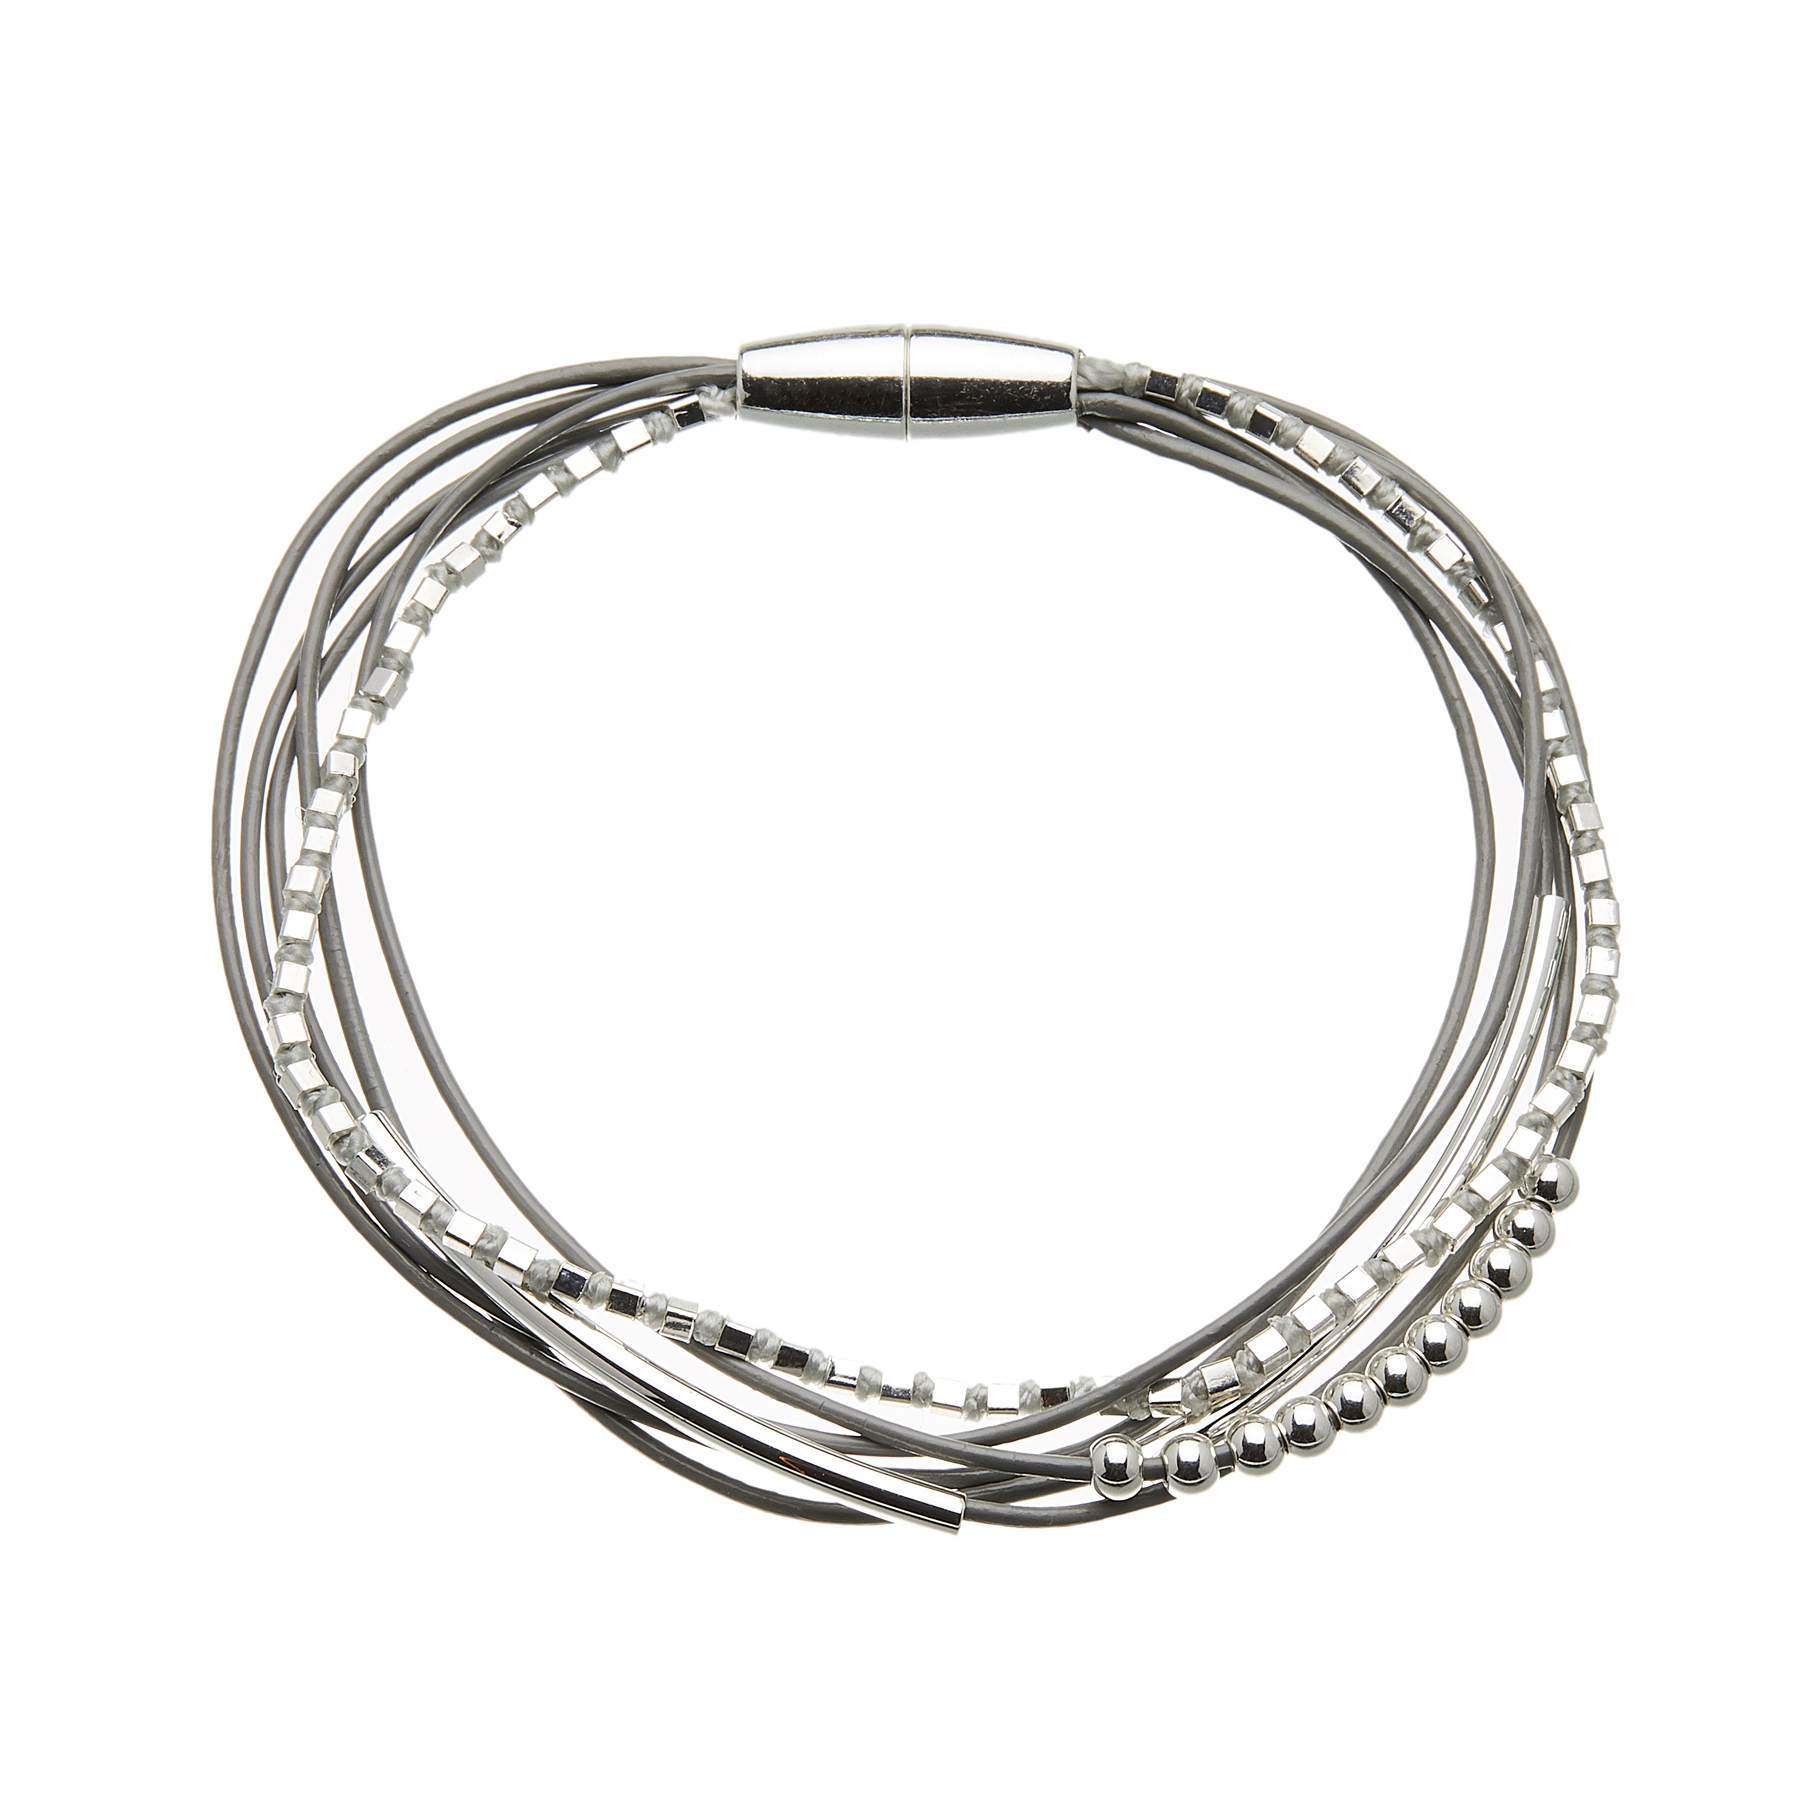 Bracelet with six grey leather strands and silver beads - Riley S